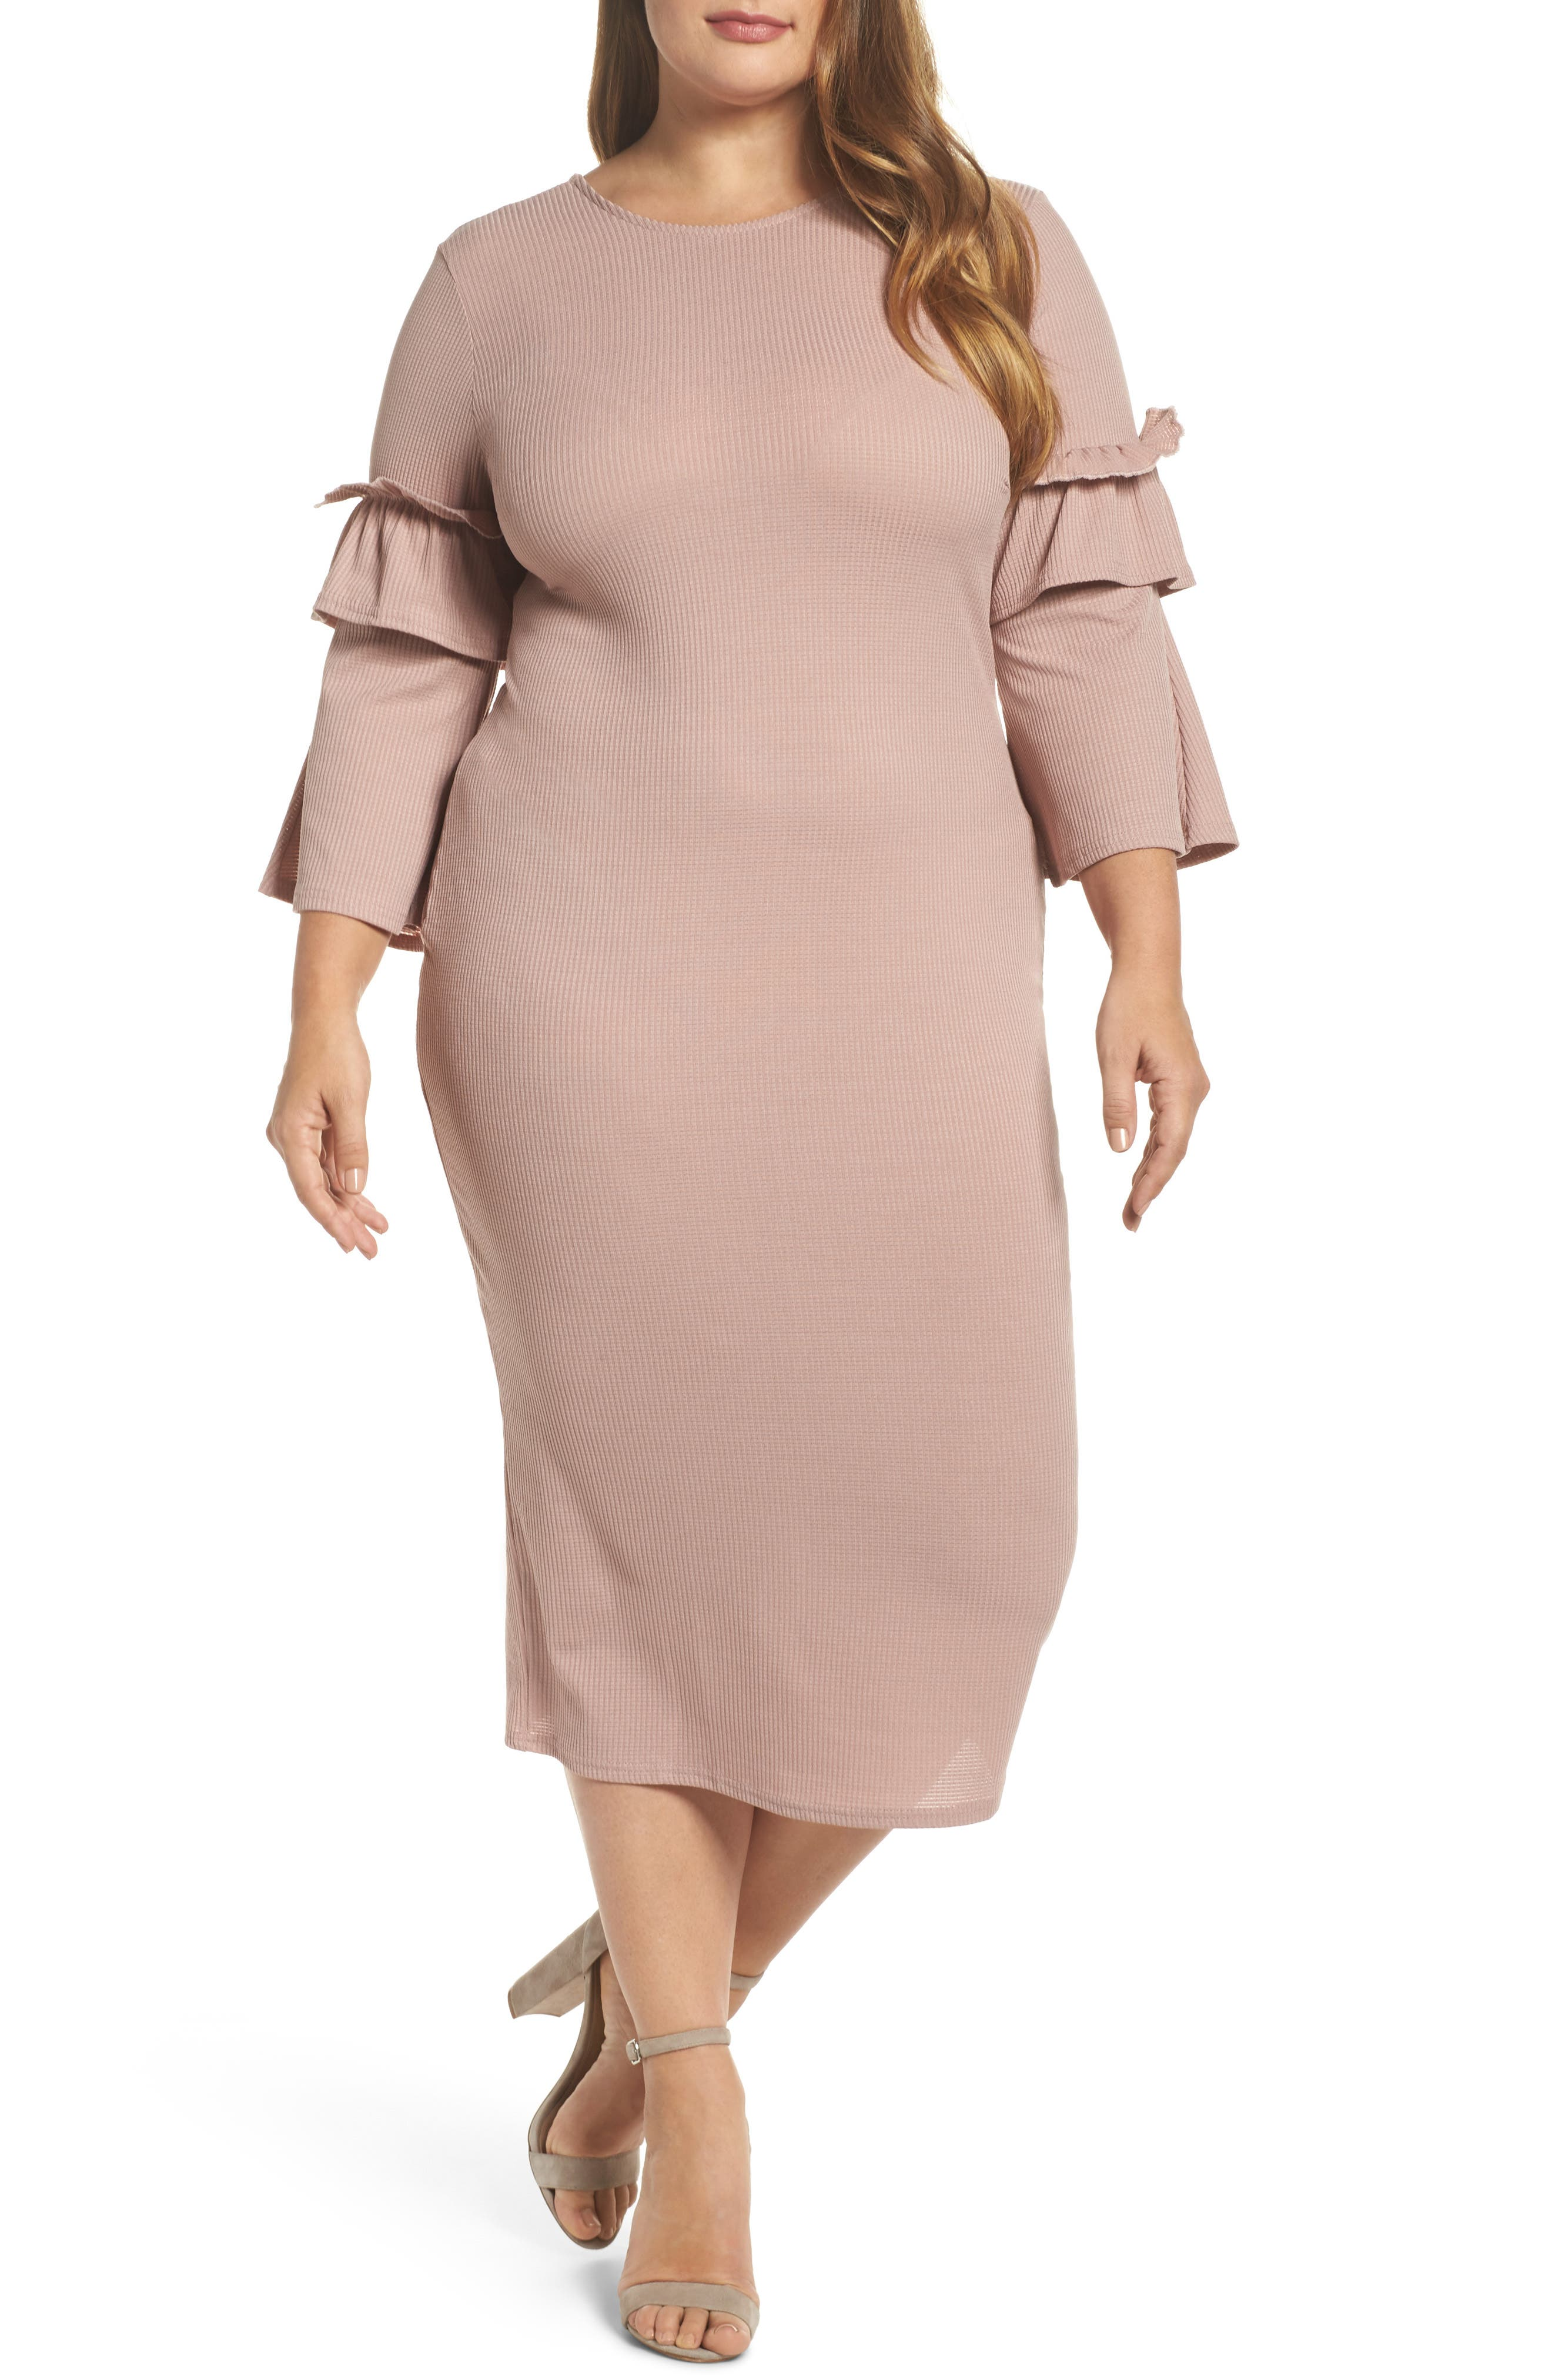 Cranberry and cream dress plus size